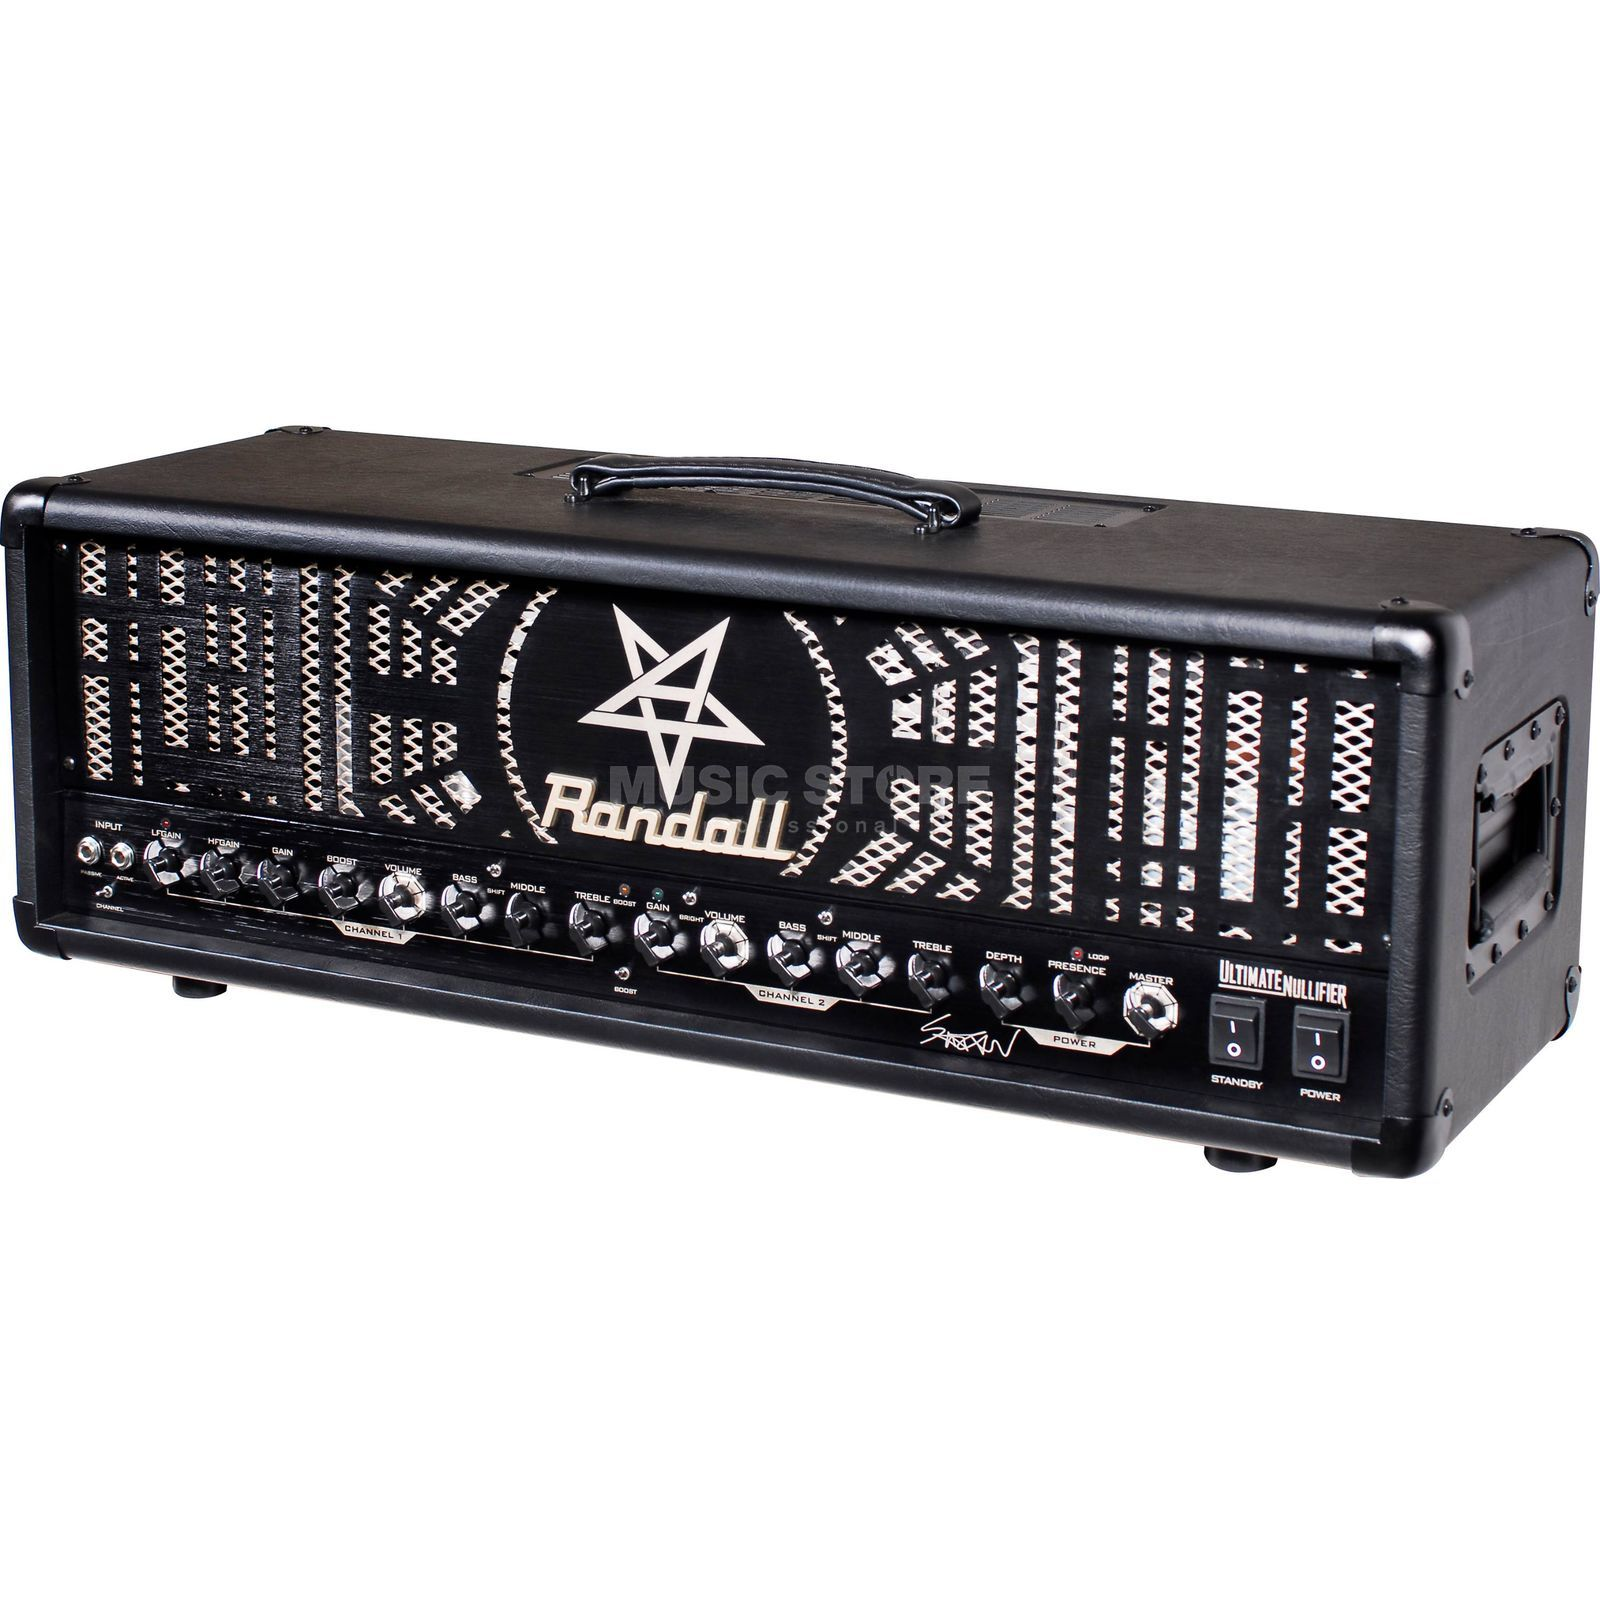 Randall UN120 Head Ultimate Nullifier Scott Ian Signature Produktbild